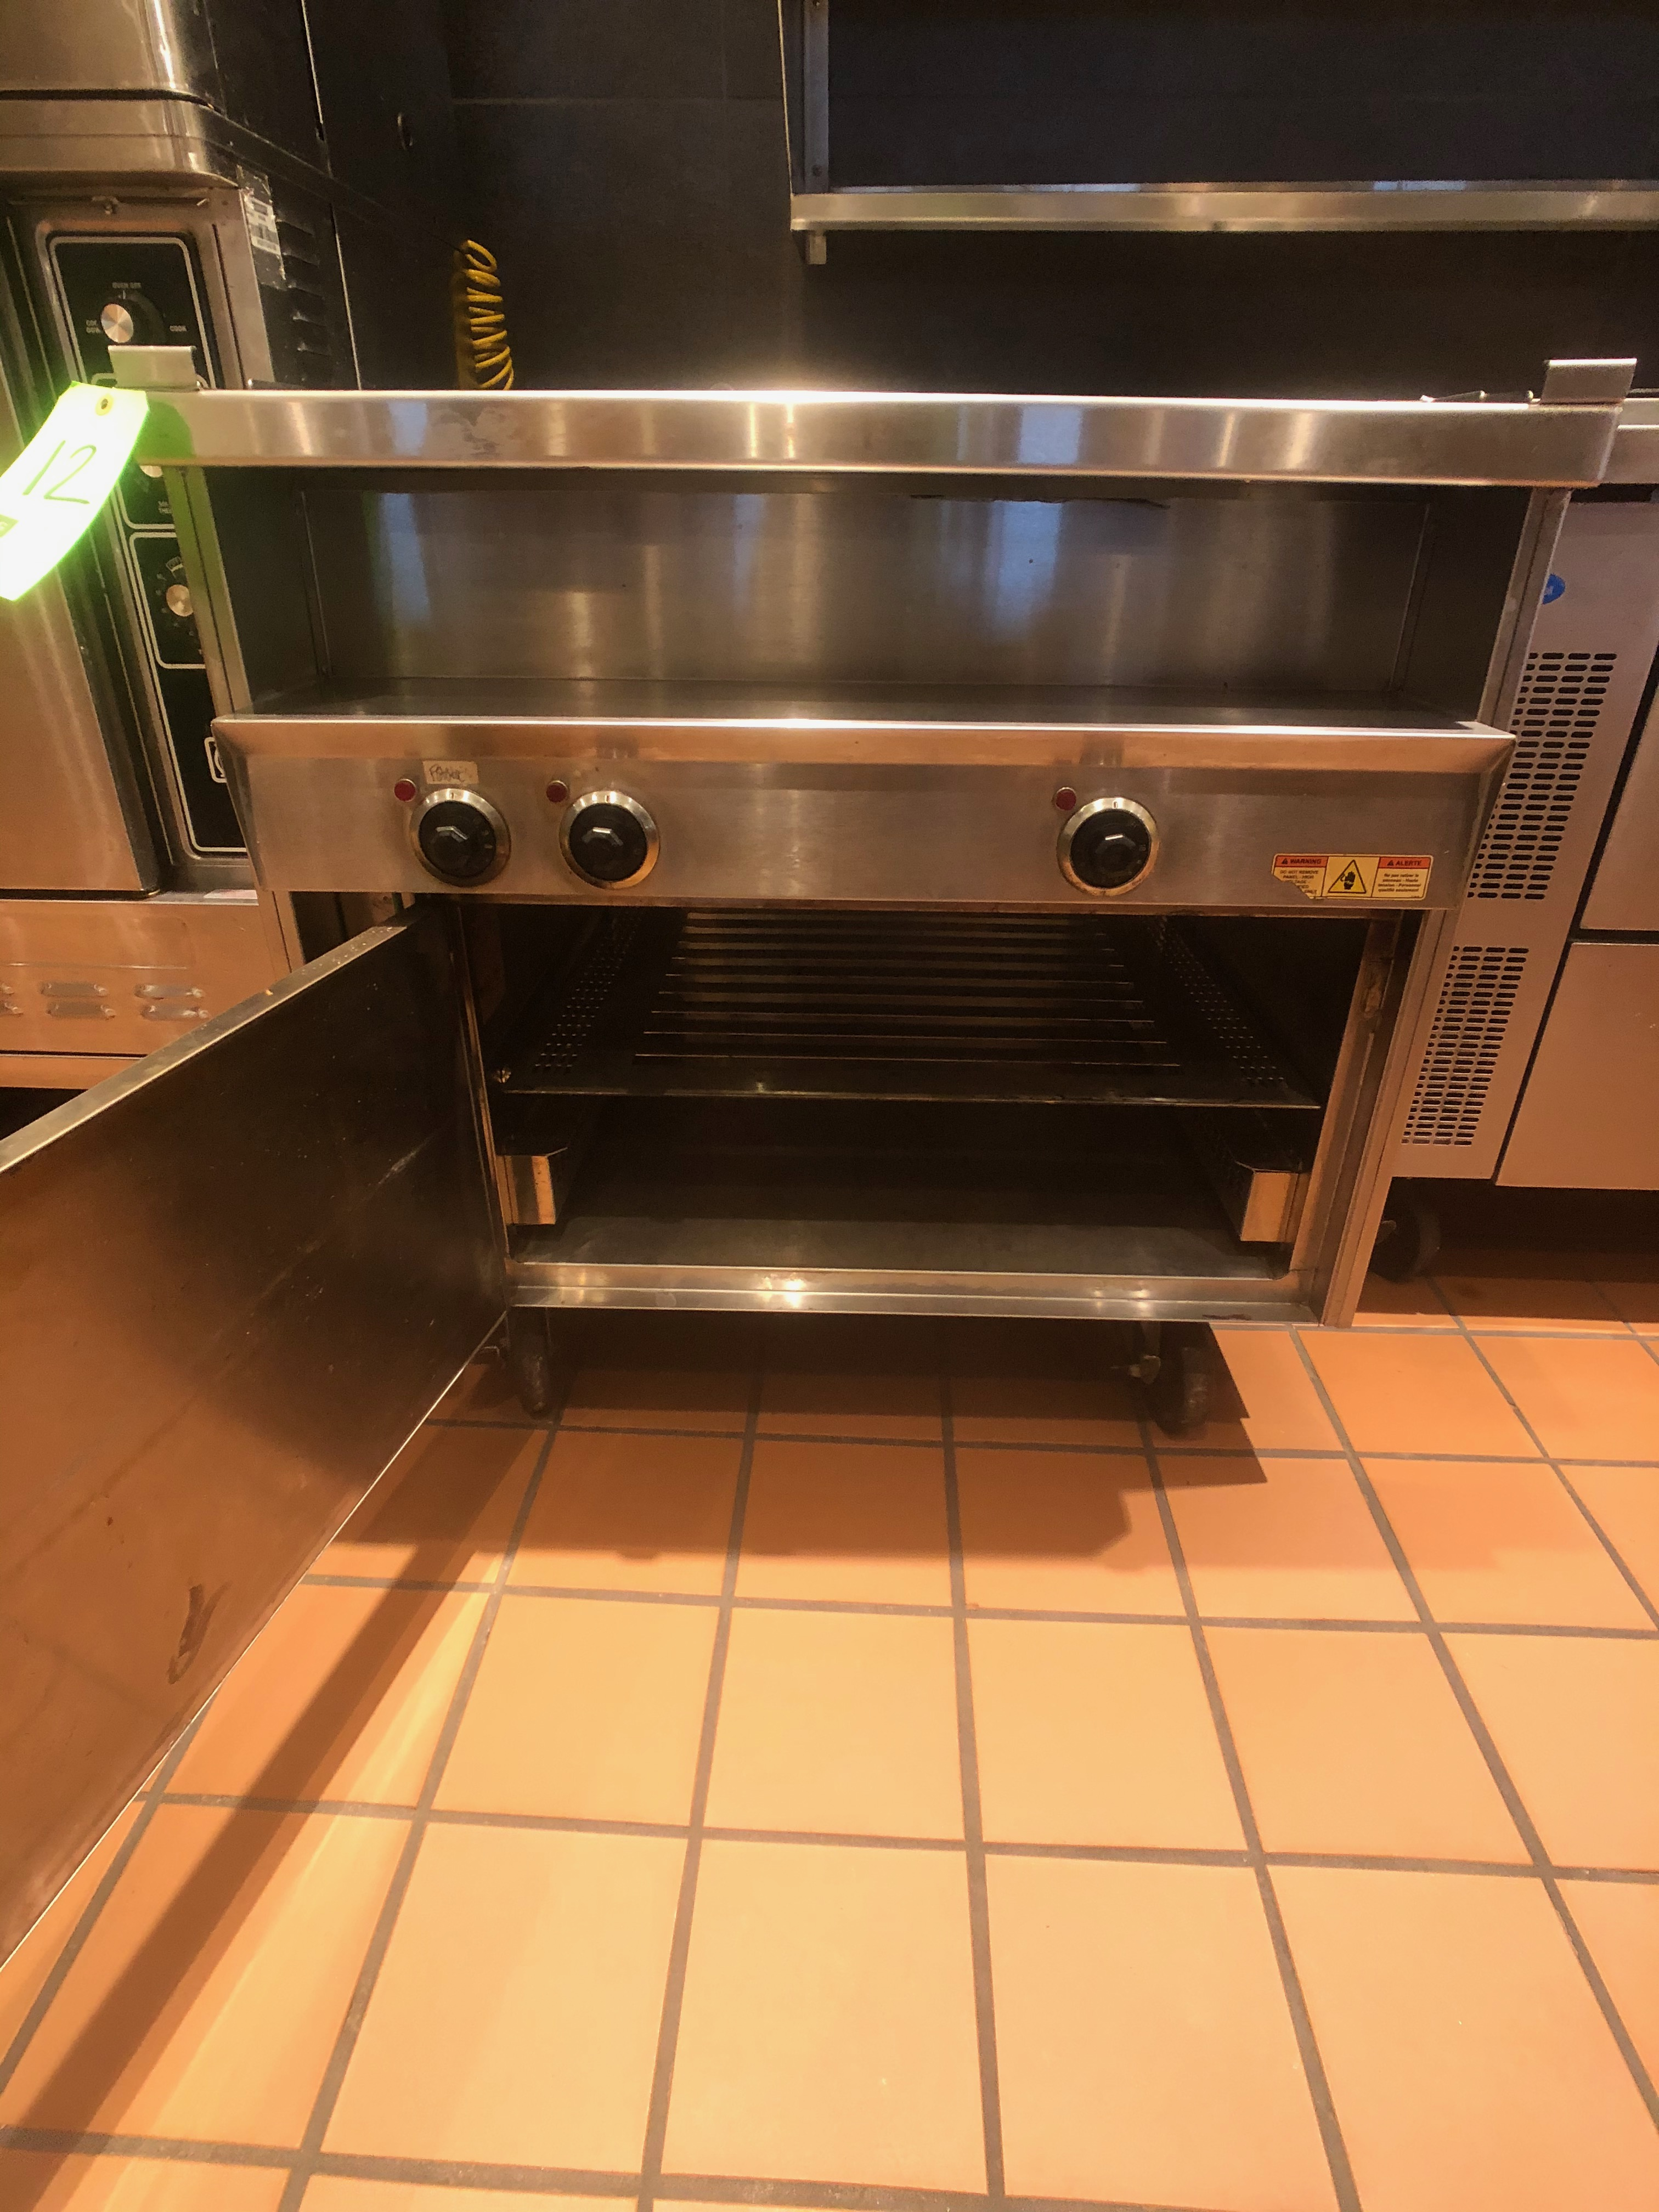 Randell Open Base Electric Hot Food Table, Model 31330, S/N W1041765-1 - Image 3 of 5